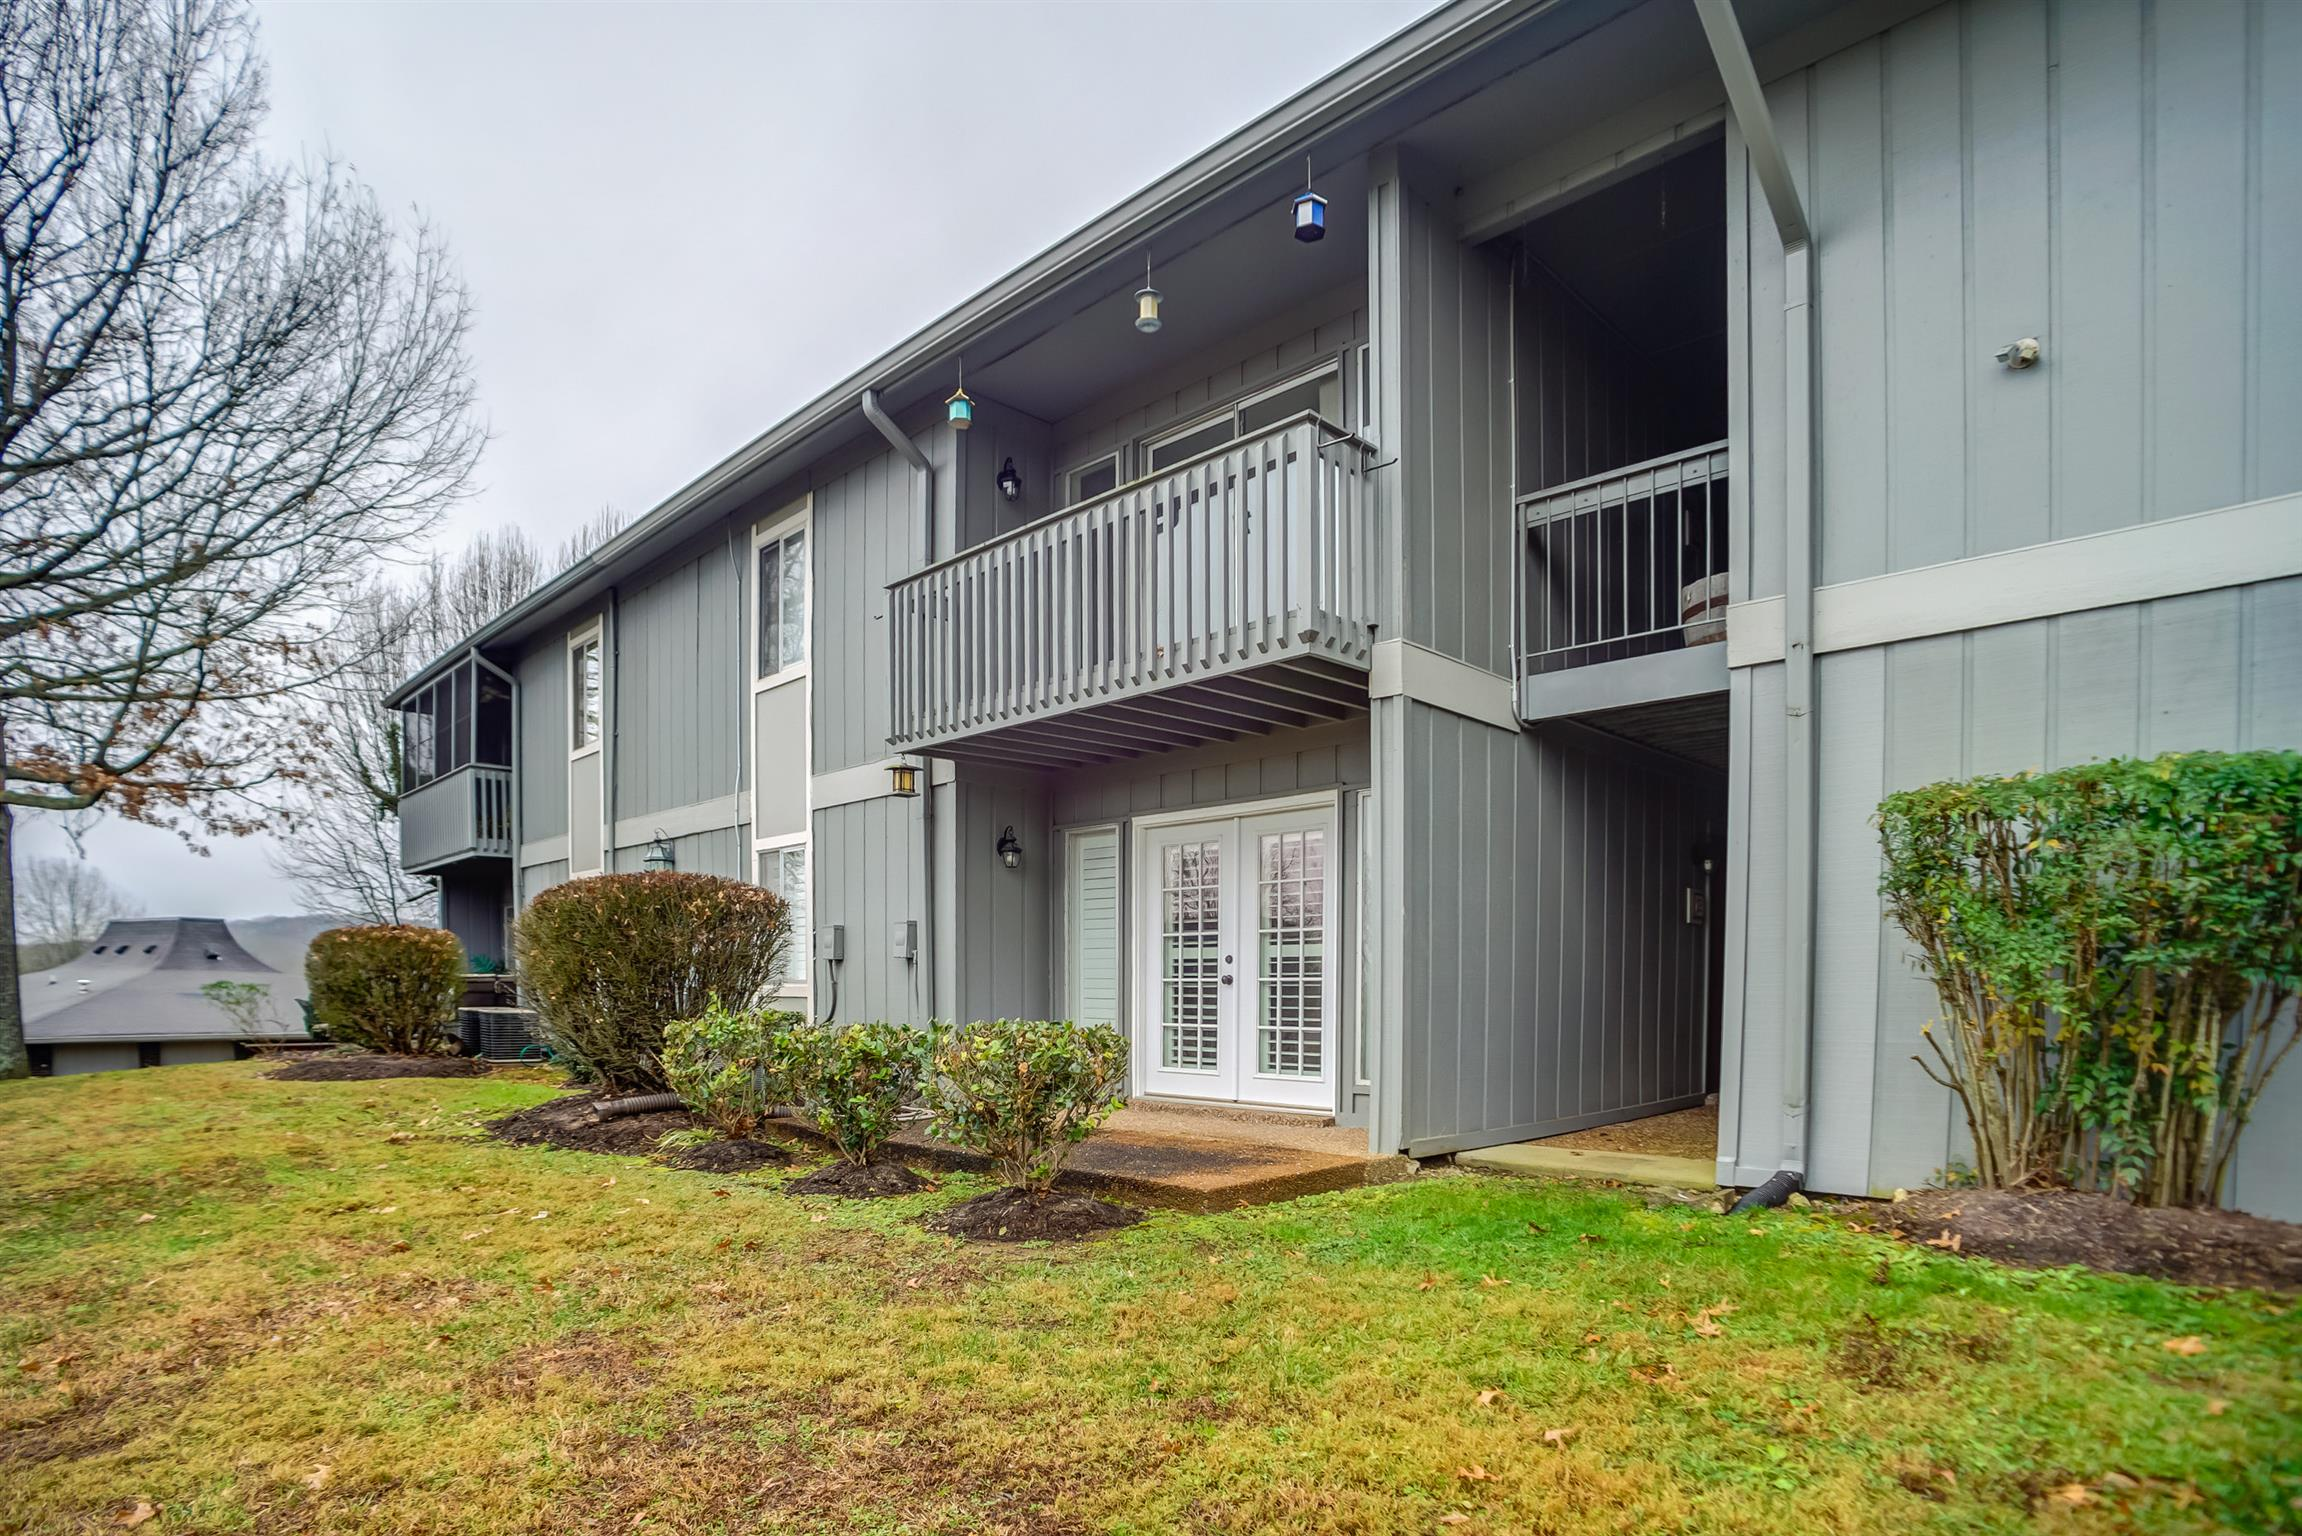 21 Vaughns Gap Rd Apt 132, Belle Meade, Tennessee